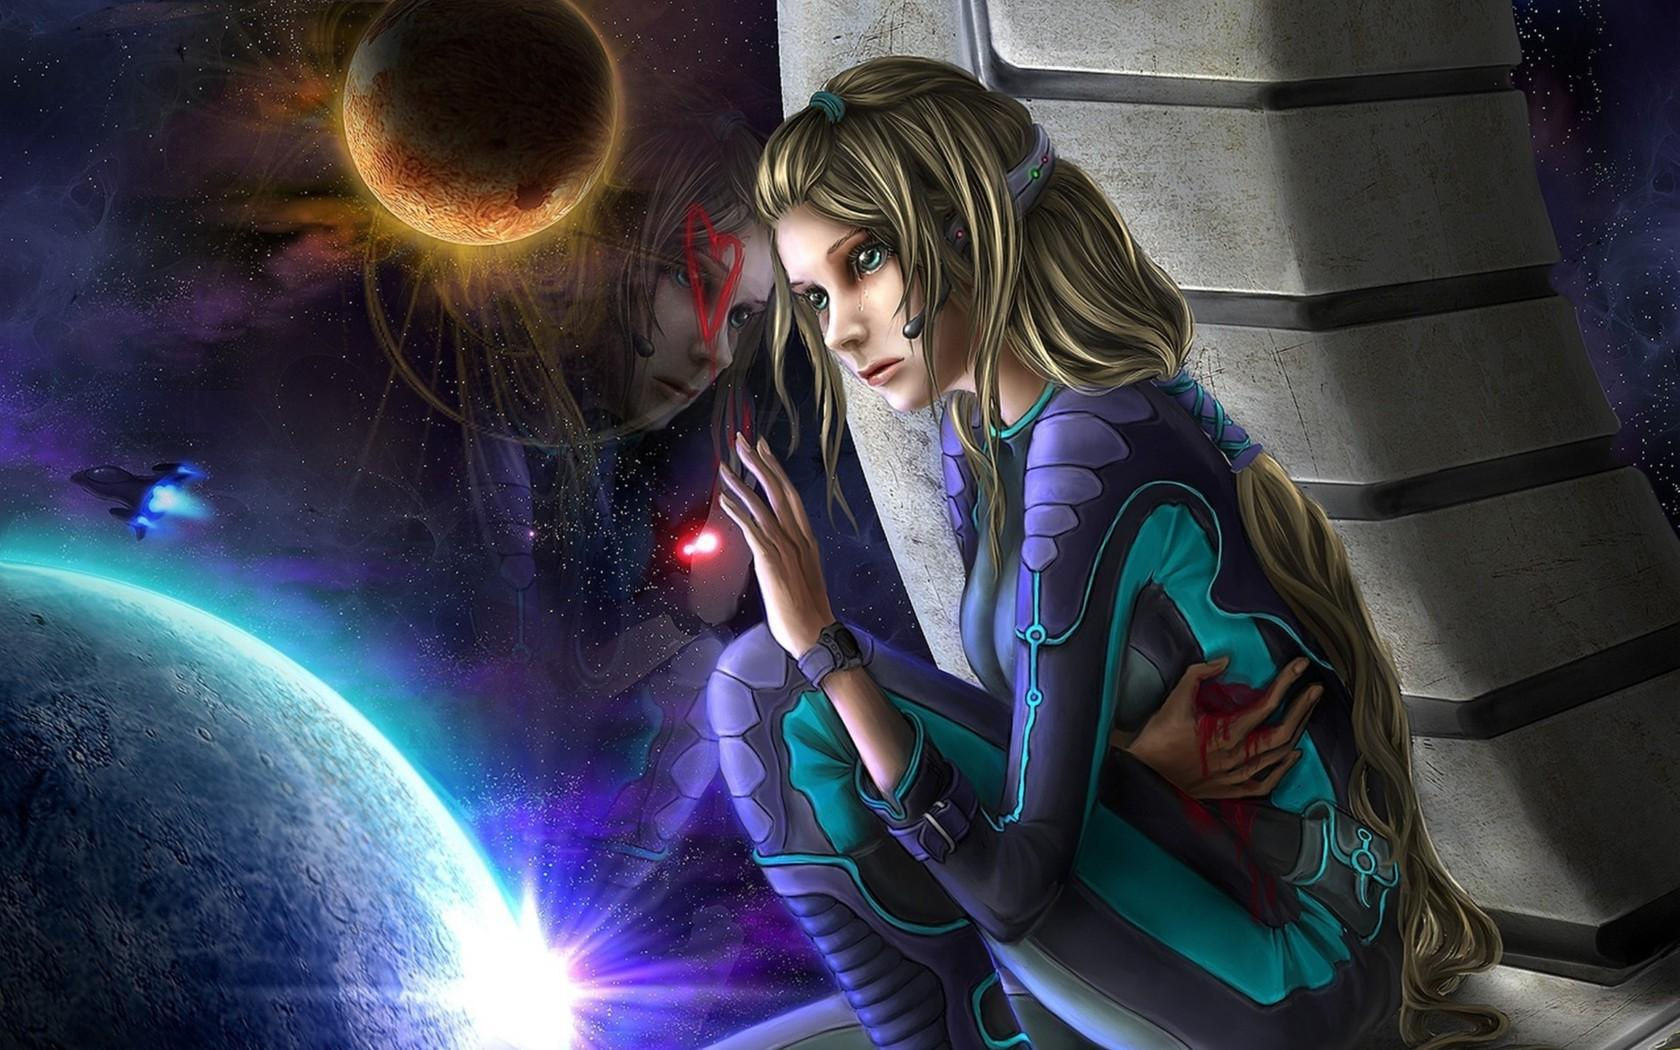 Girl Playing Games In Space 1600x900 Wallpaper Spacegirl Wallpaper And Background Image 1680x1050 Id